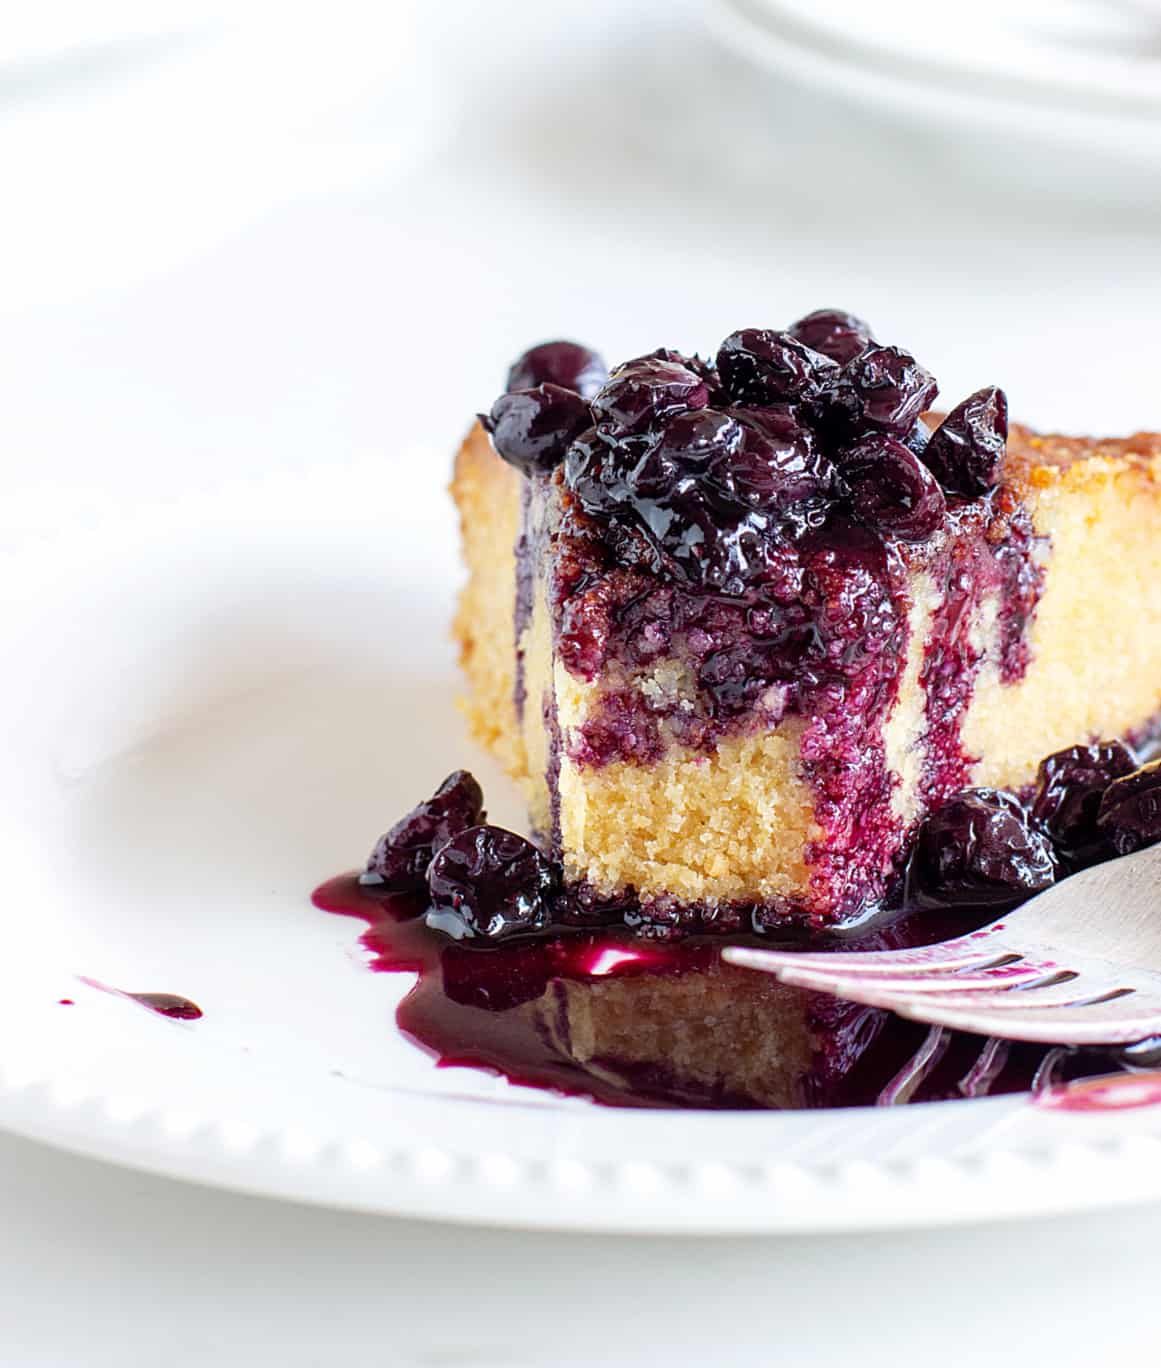 Eaten slice of polenta cake, a pool of blueberry sauce, white plate, silver fork